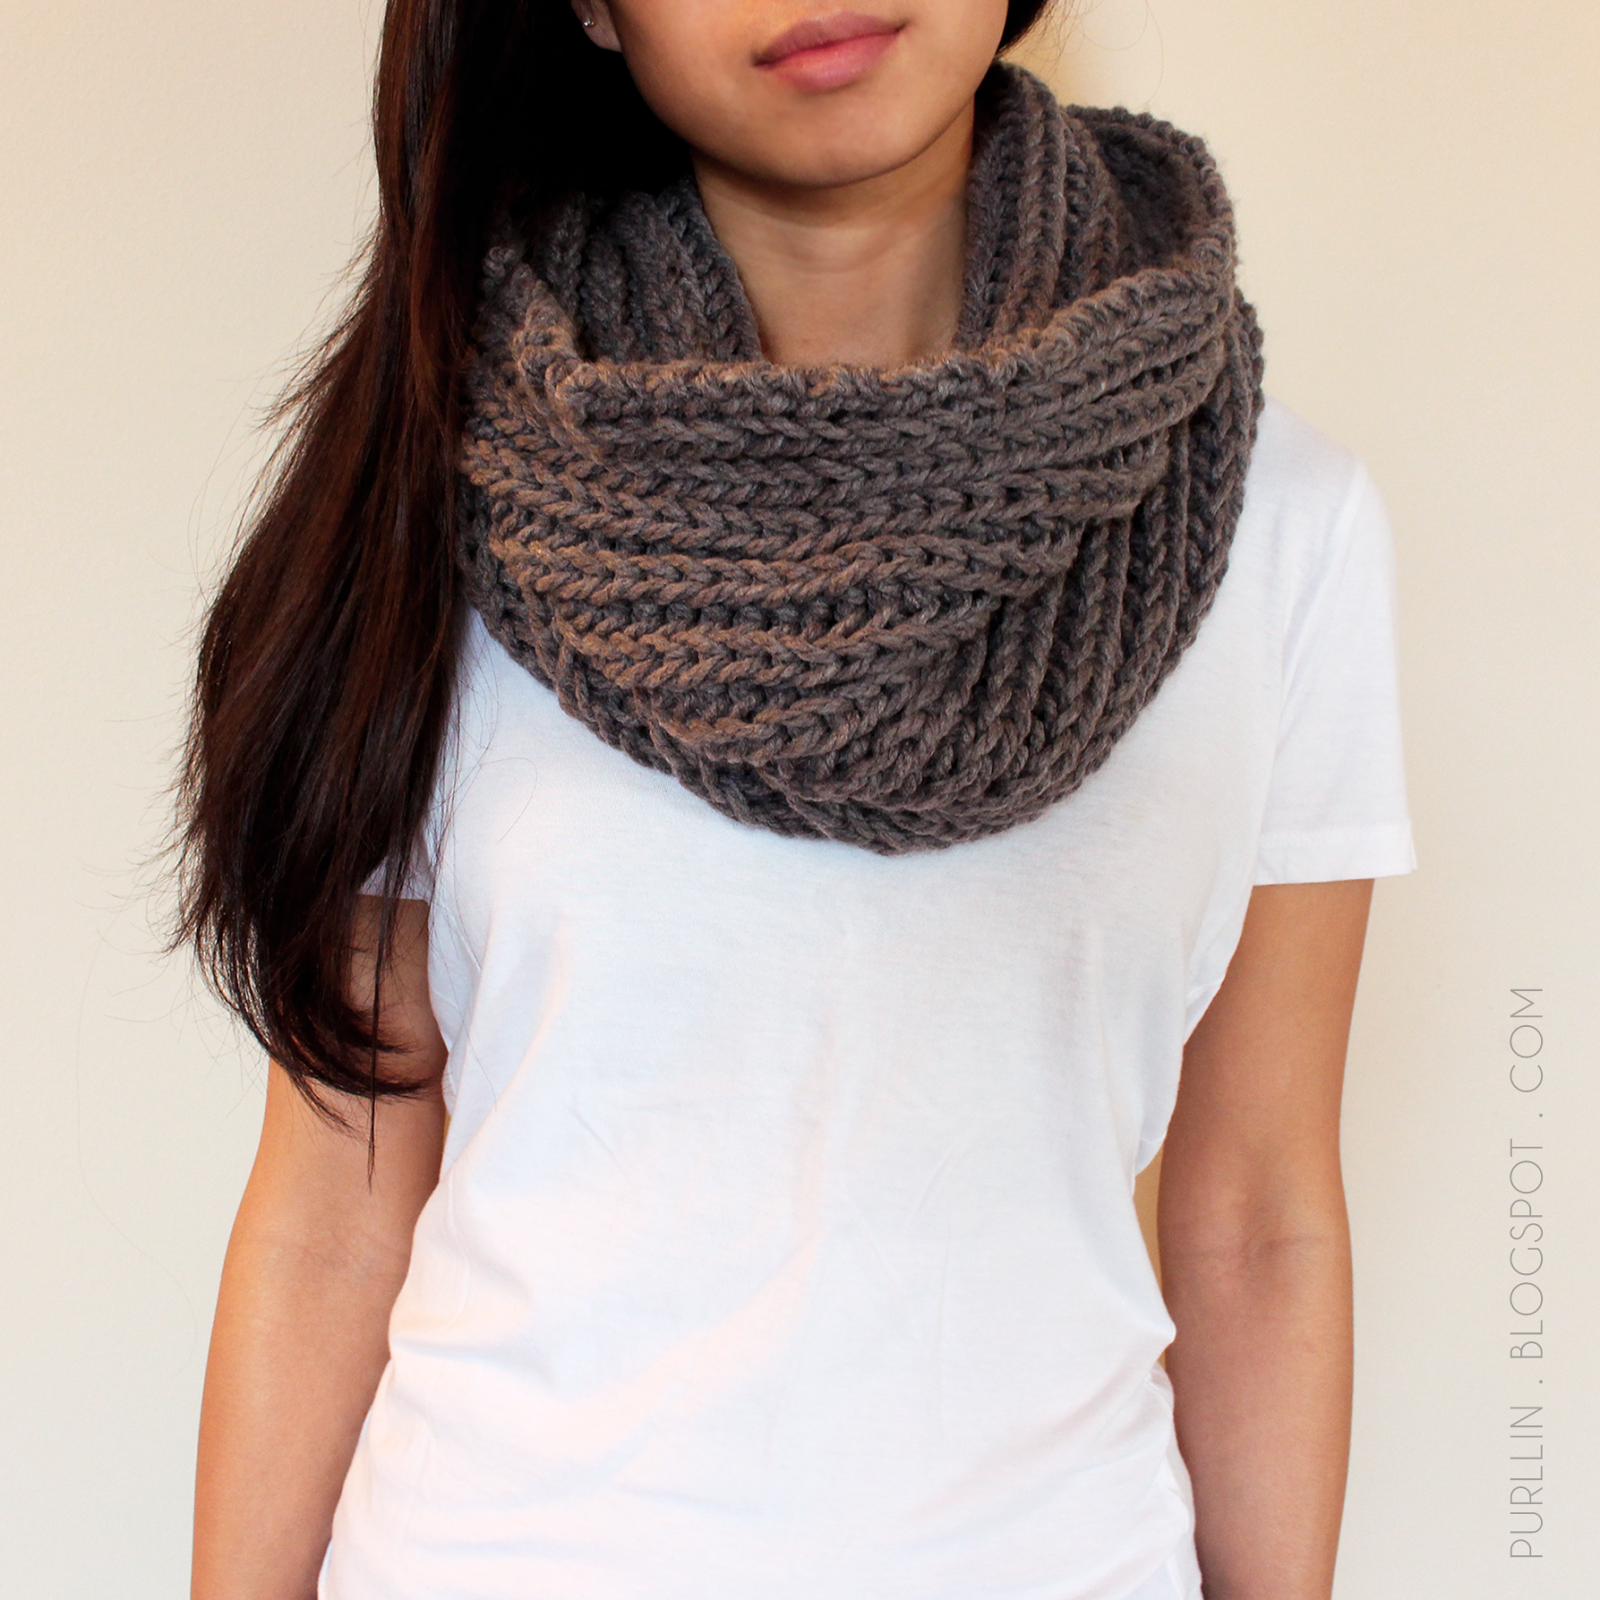 An easy & quick beginner knitting pattern: The Textured November ...